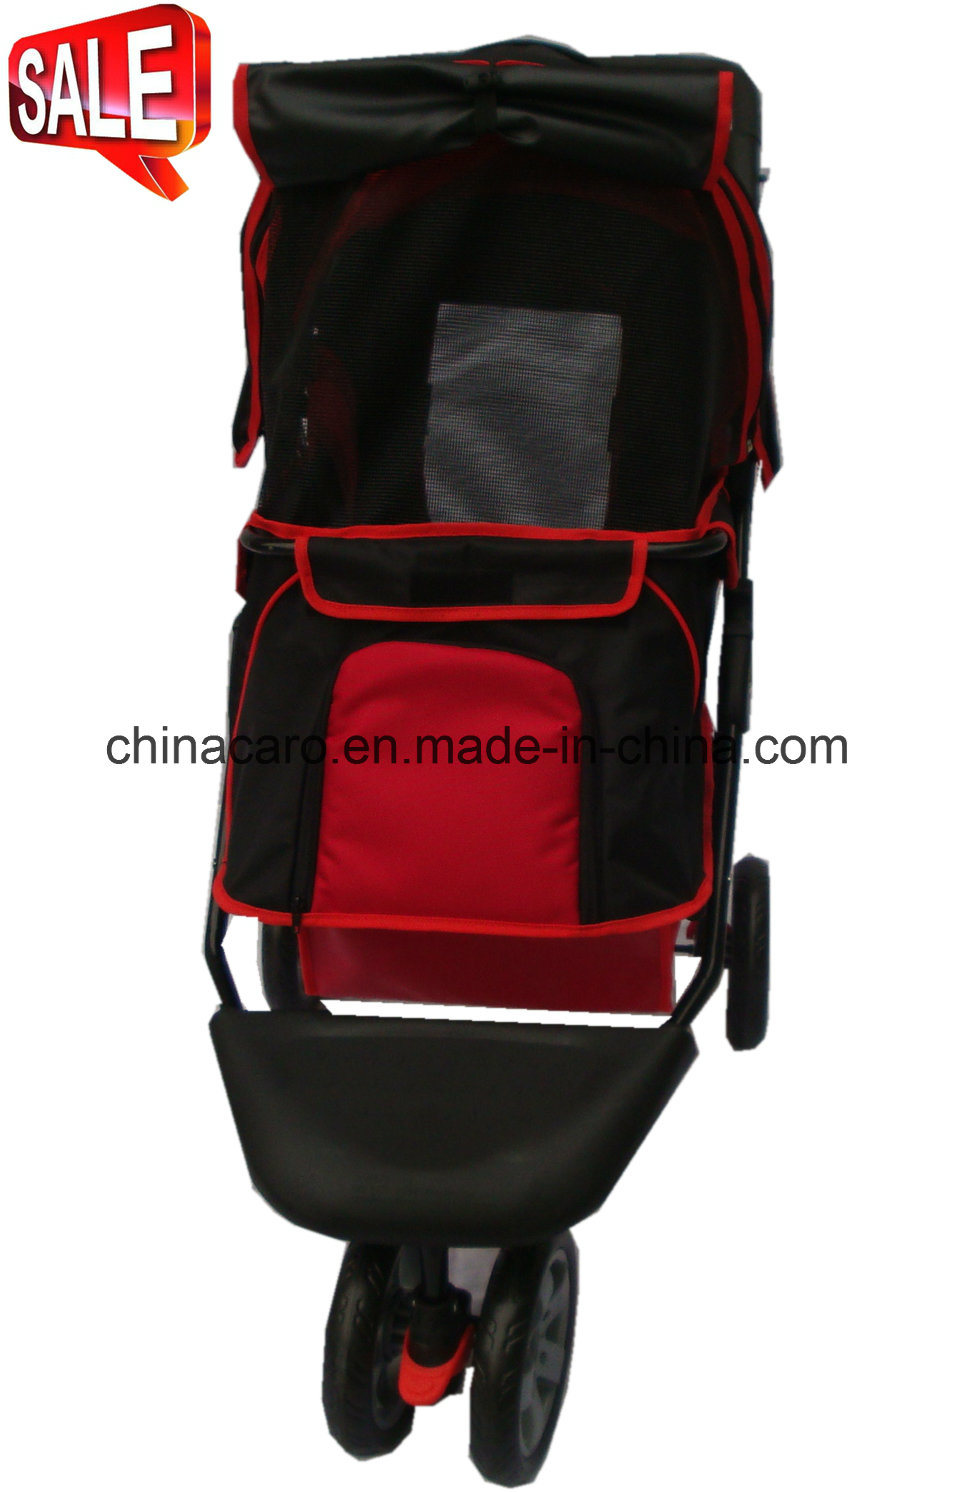 High Quality Pet Products 3-Wheels Pet Stroller Bb-PS02 pictures & photos